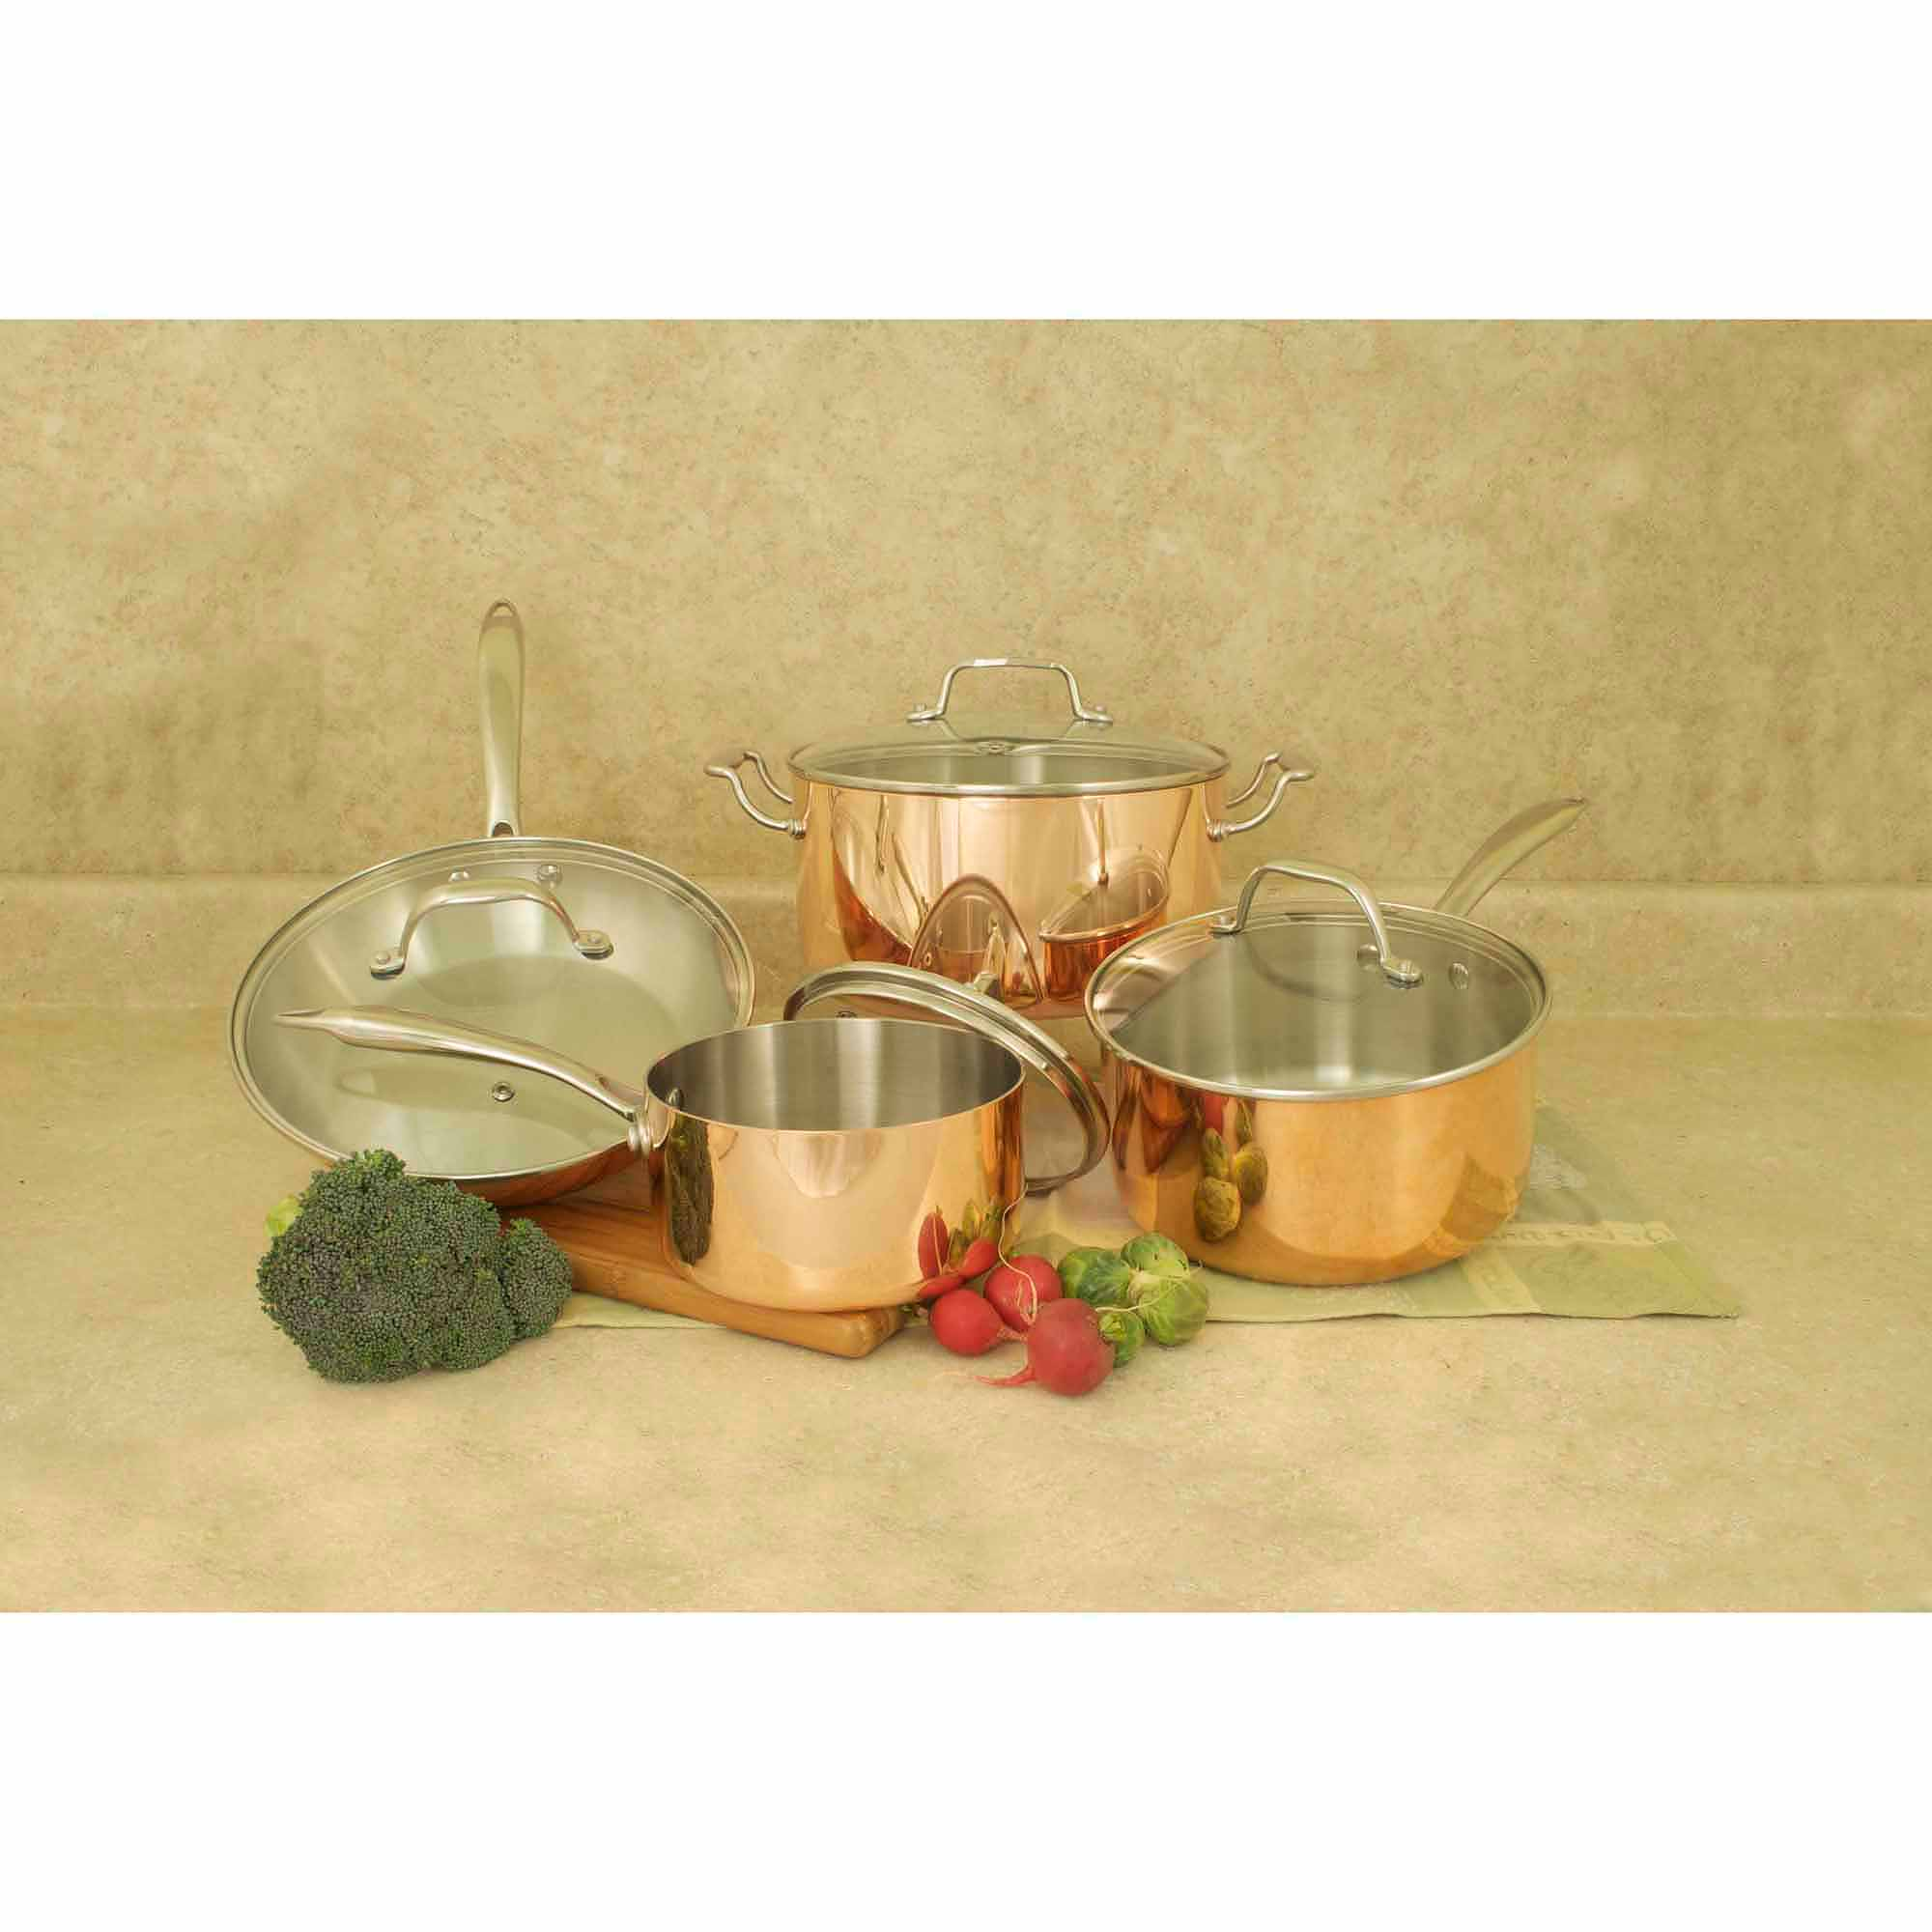 Cook Pro 8pc Tri-Ply Copper Cookware Set with Glass Lids